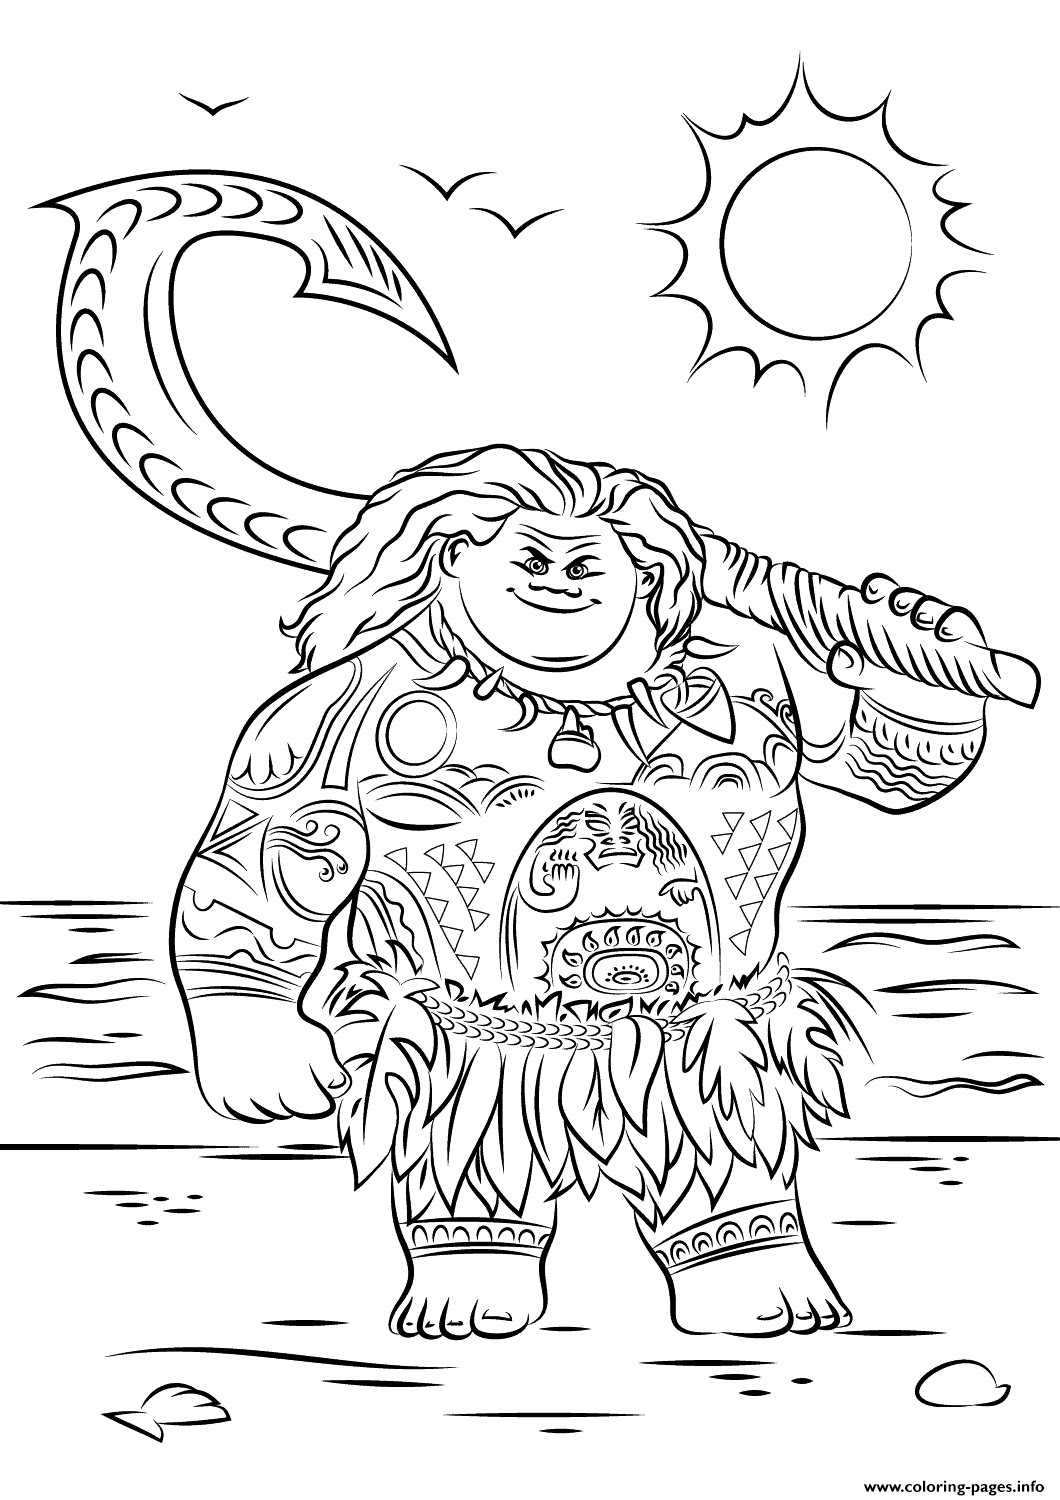 Print maui from moana disney coloring pages | DISNEY~Coloring Pages ...